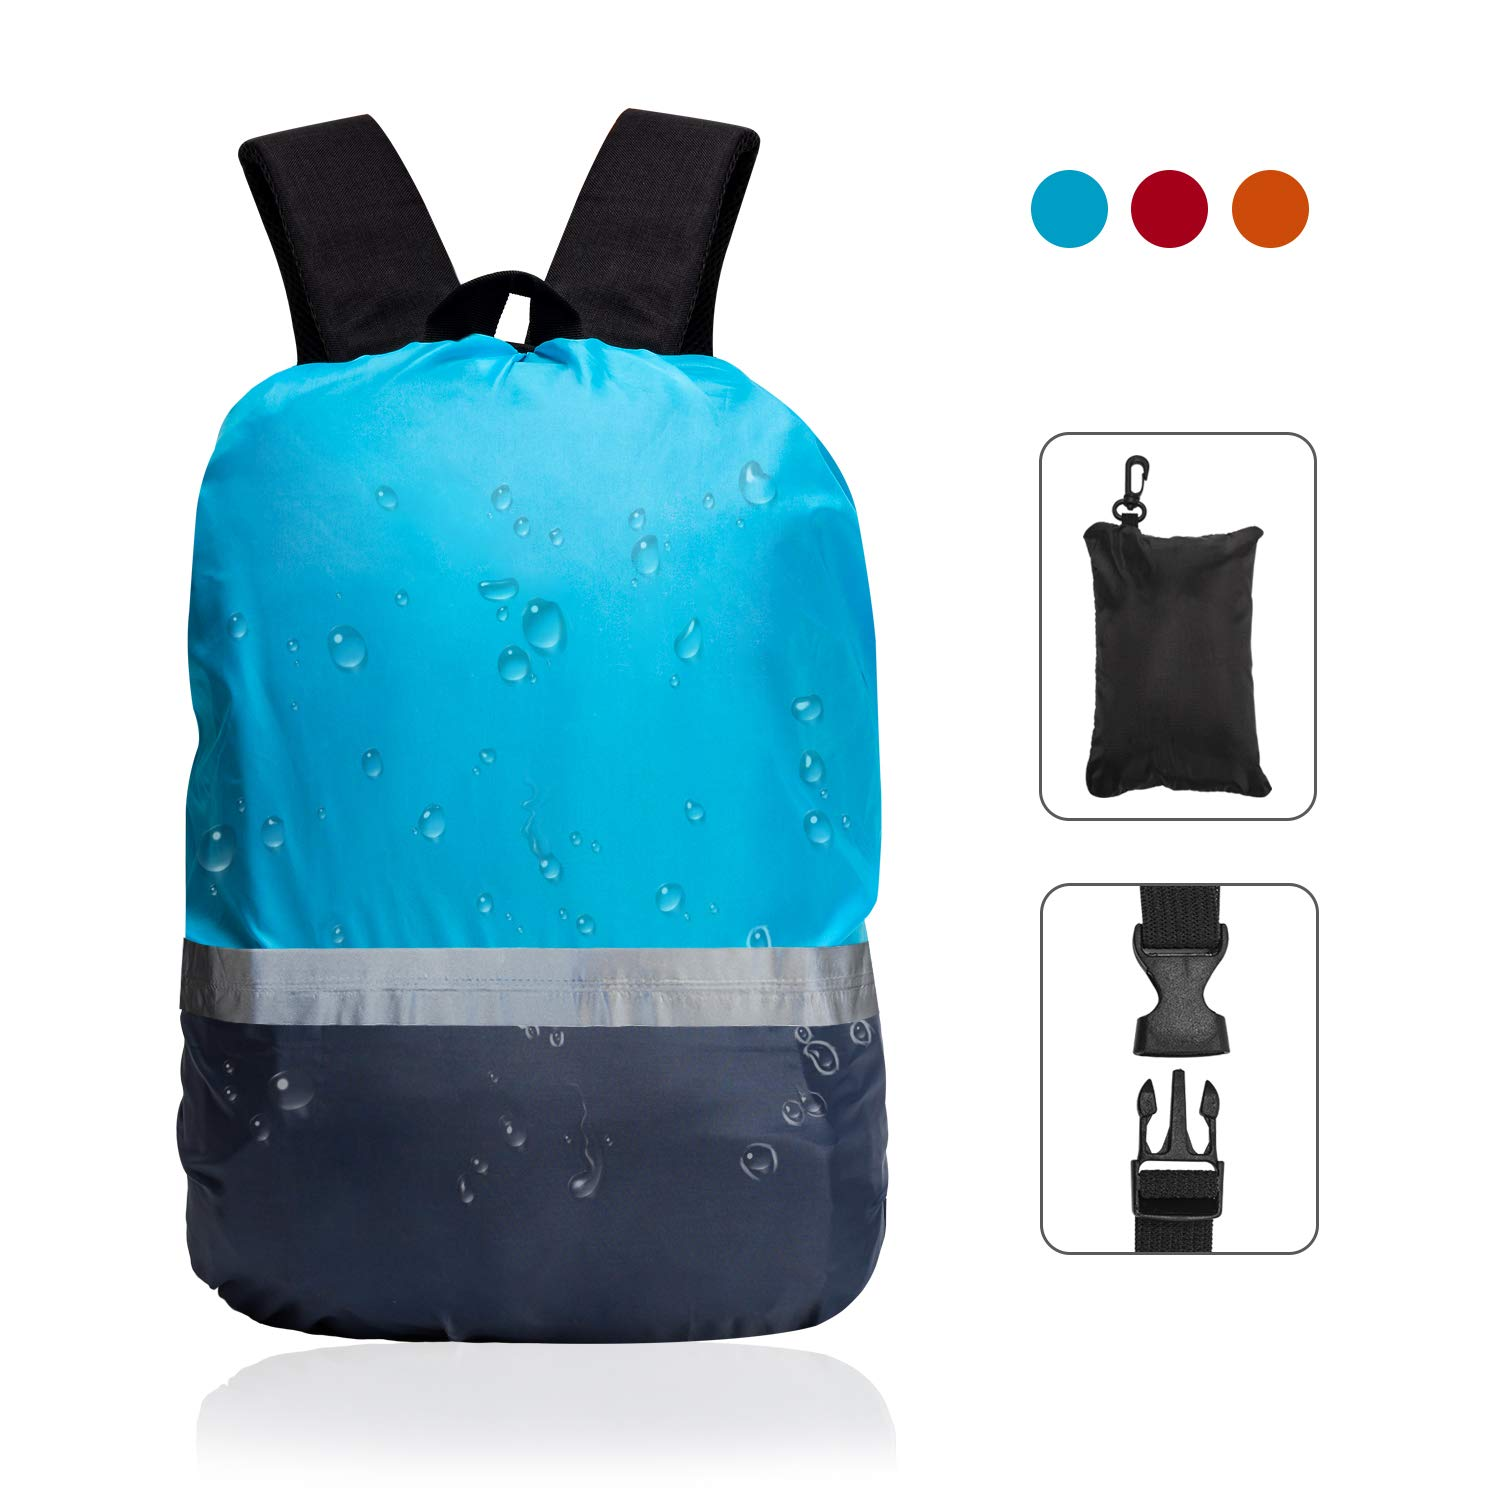 blueee Small TITE Backpack Rain Cover with Reflective Strap greenical Adjustable Buckle Fashion Waterproof for Hiking Camping Outdoor Traveloing Activities Clinbing Cycing Gift